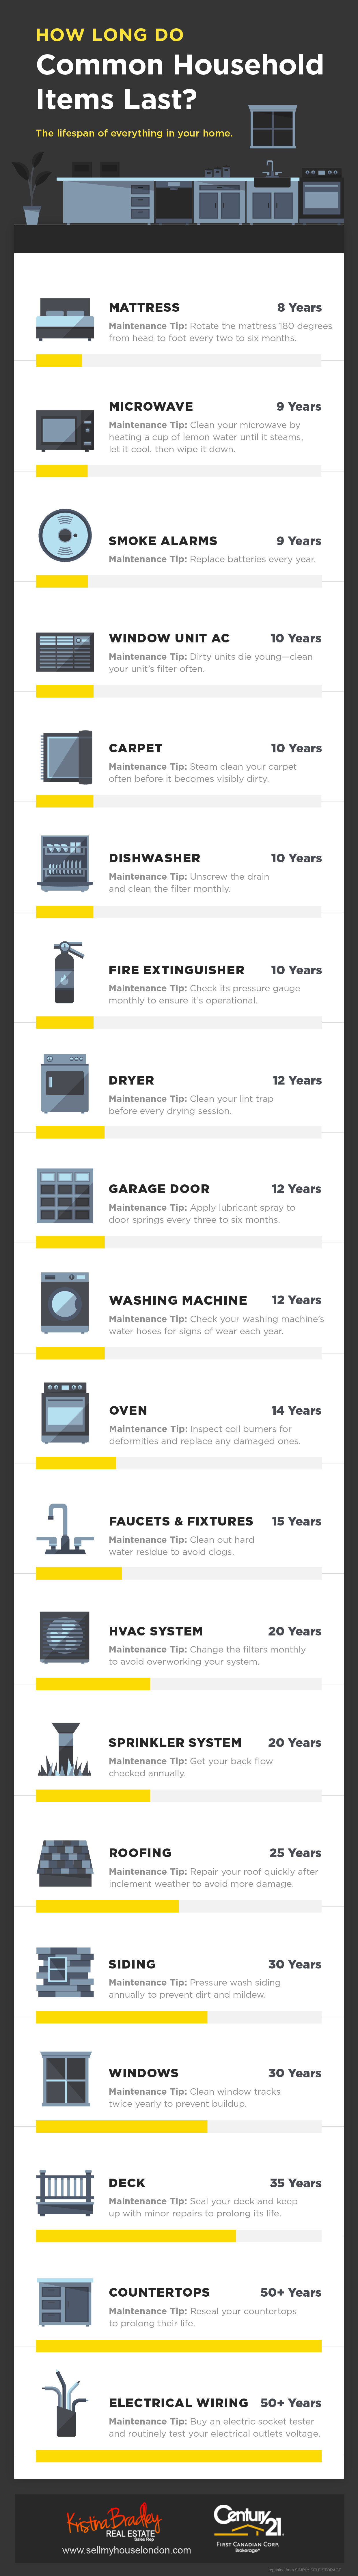 Life Span of Household Goods